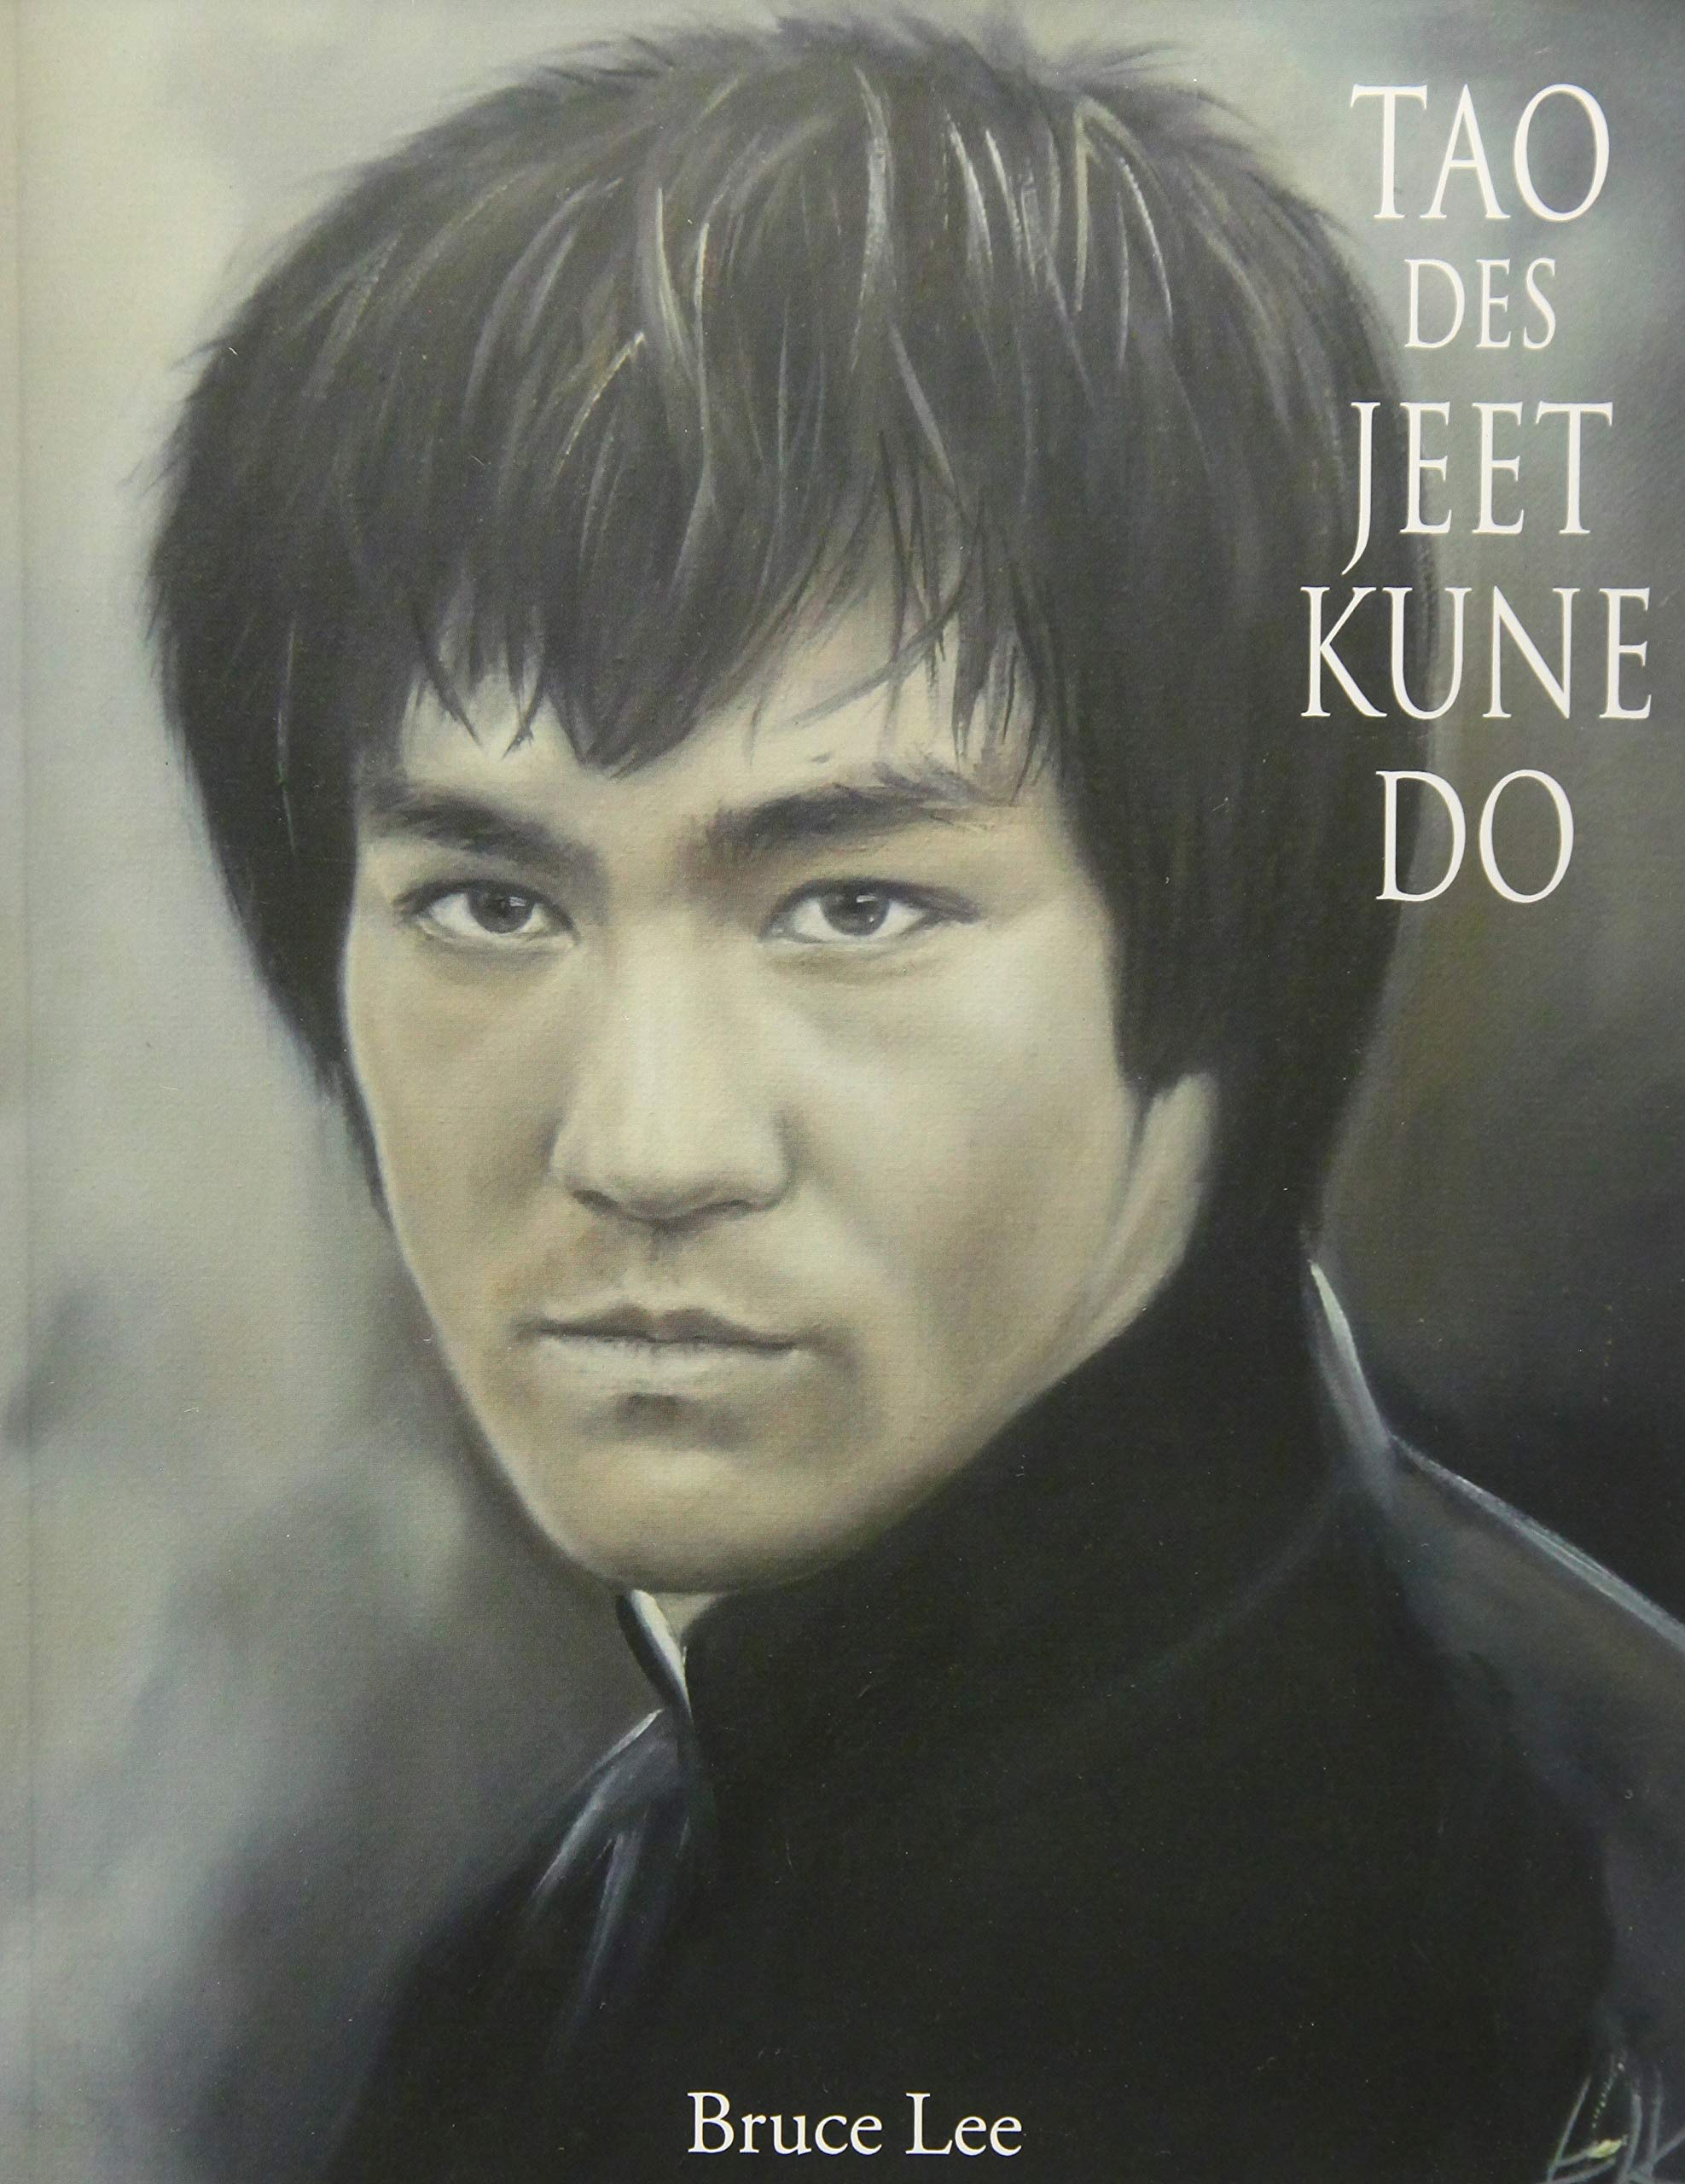 Pdf kune of bruce tao jeet lee do by